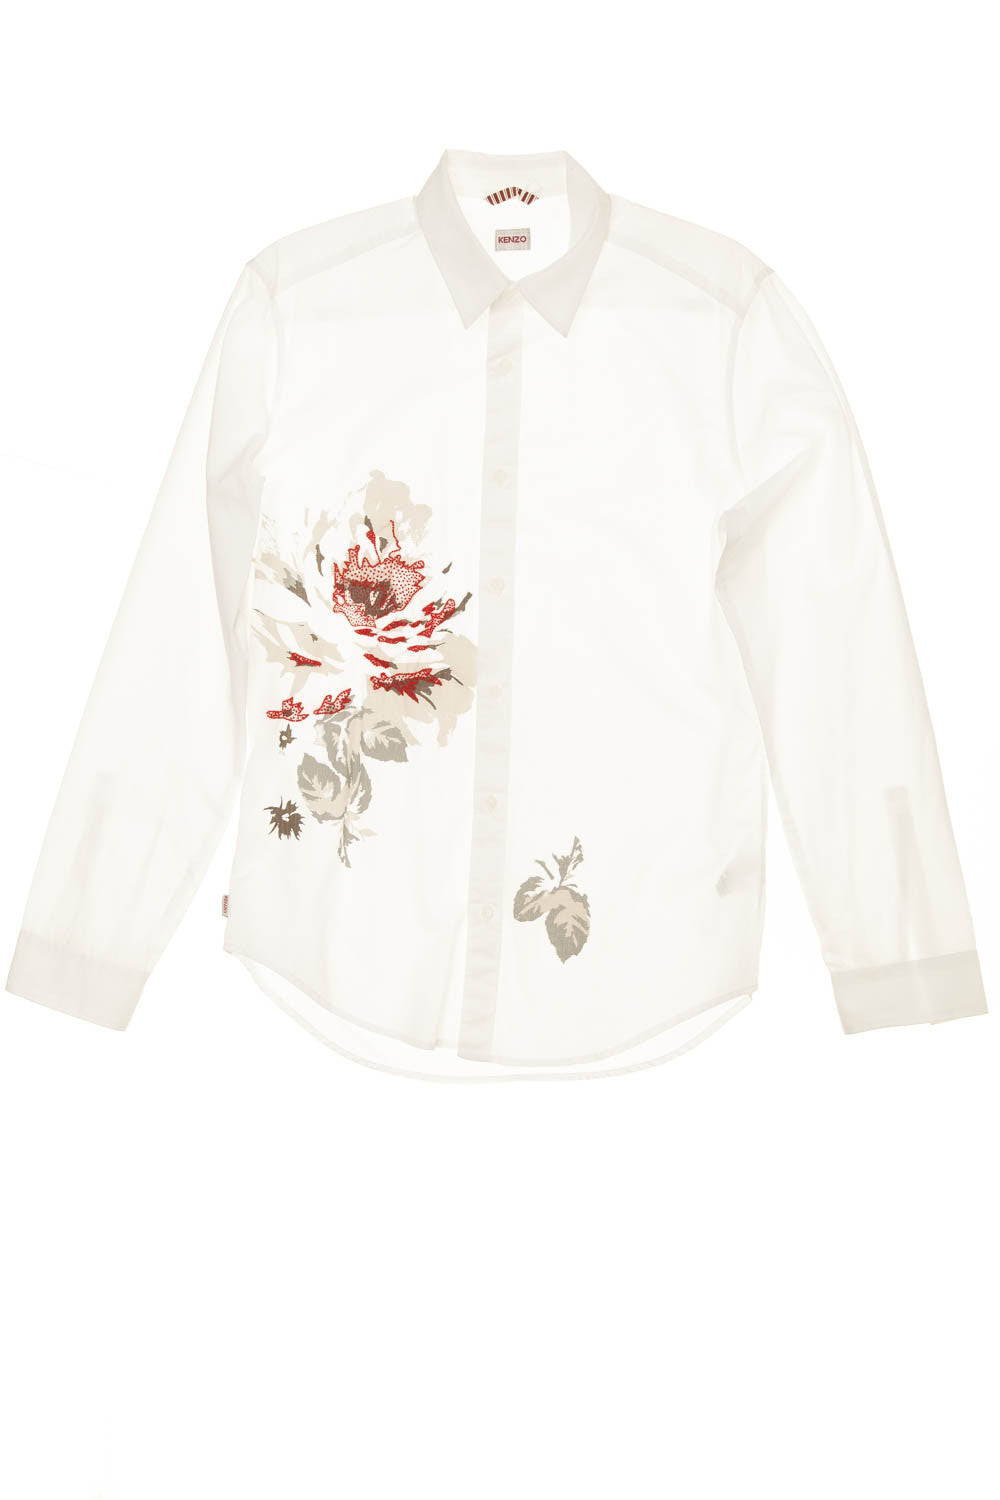 Kenzo - White Button Up Blouse with Red Flowers - M